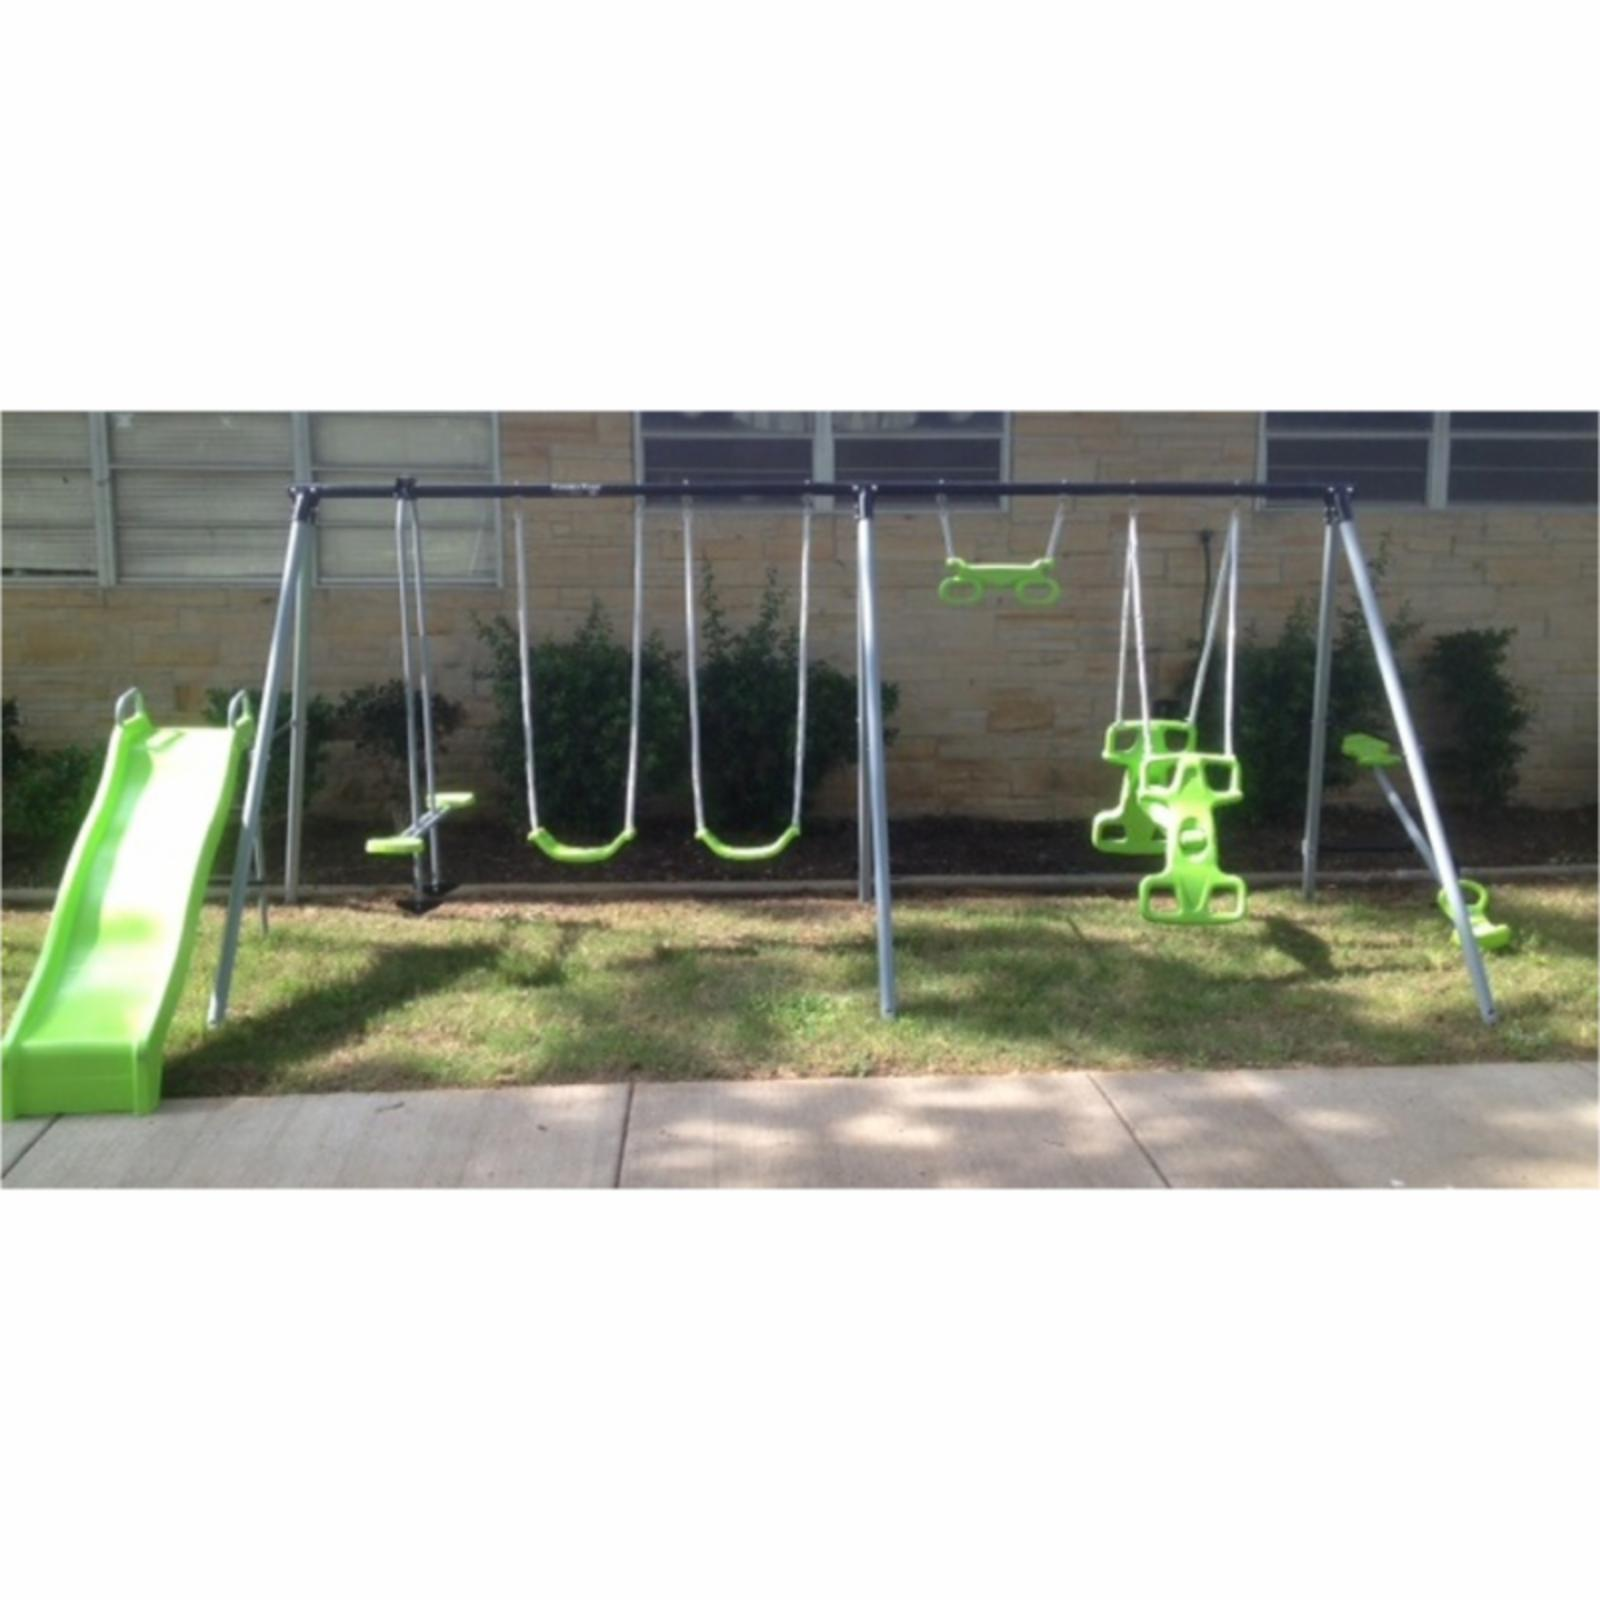 Flexible Flyer World of Fun Metal Swing Set - 46607T